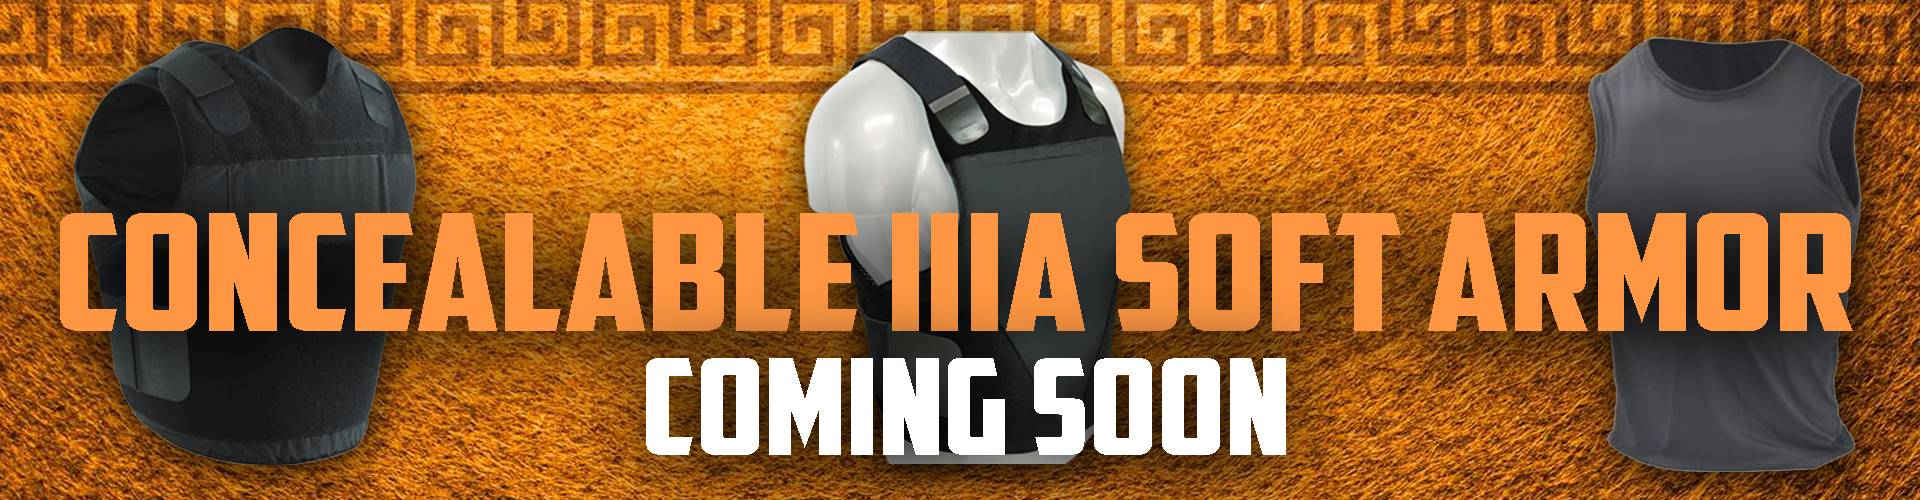 Concealable Soft Armor Coming Soon